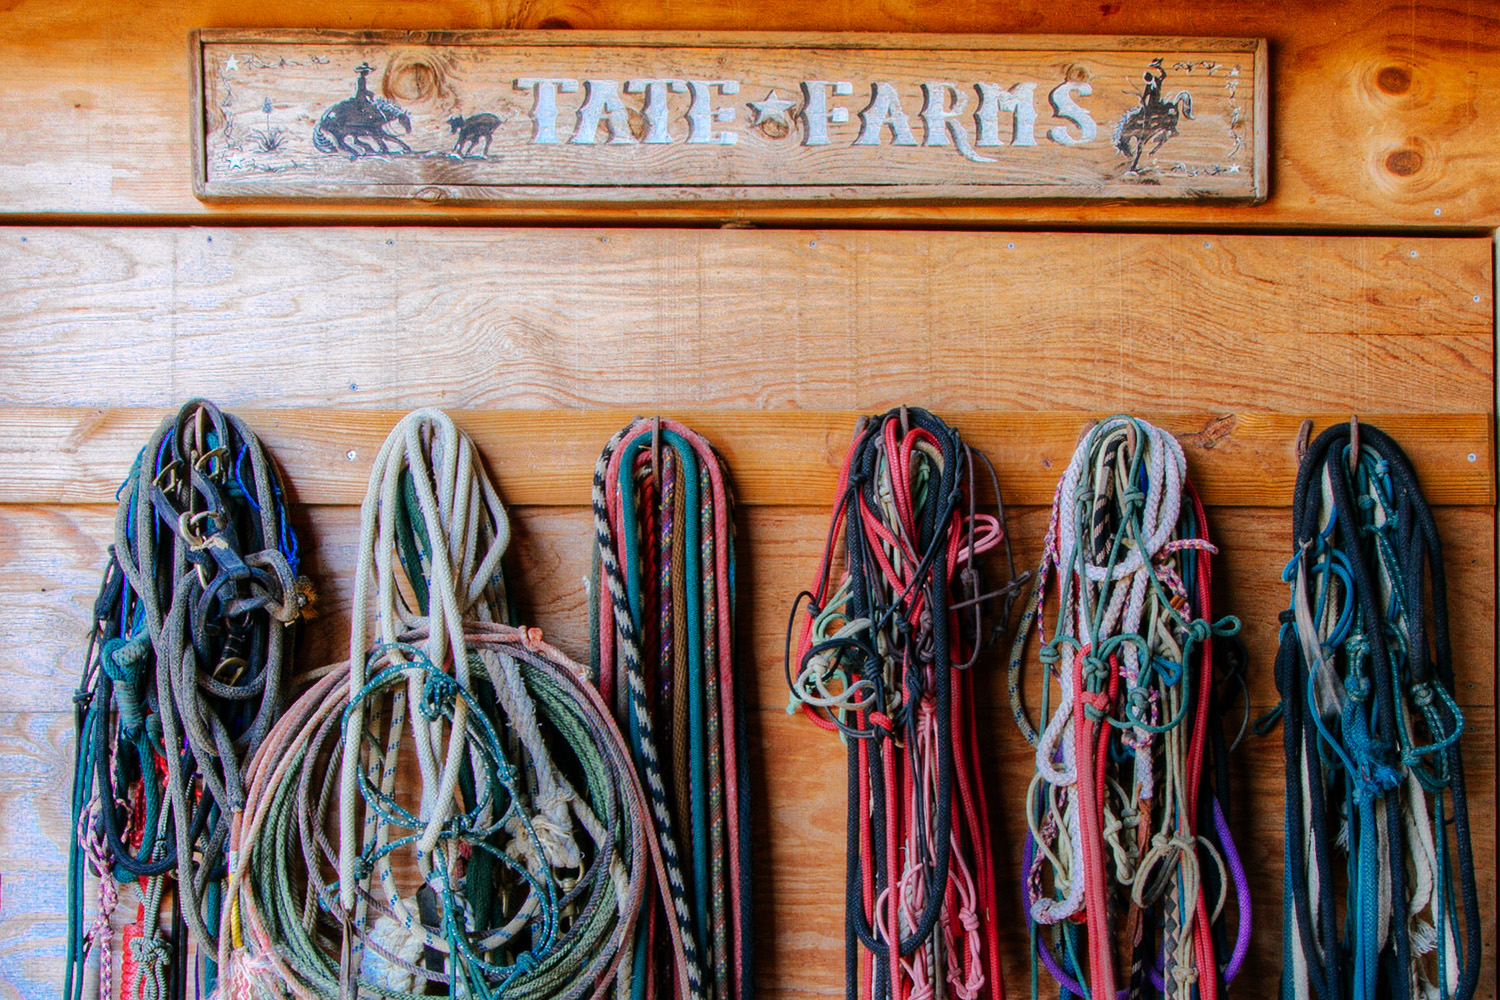 A working ranch, horse leads are abundant at Summerfield.